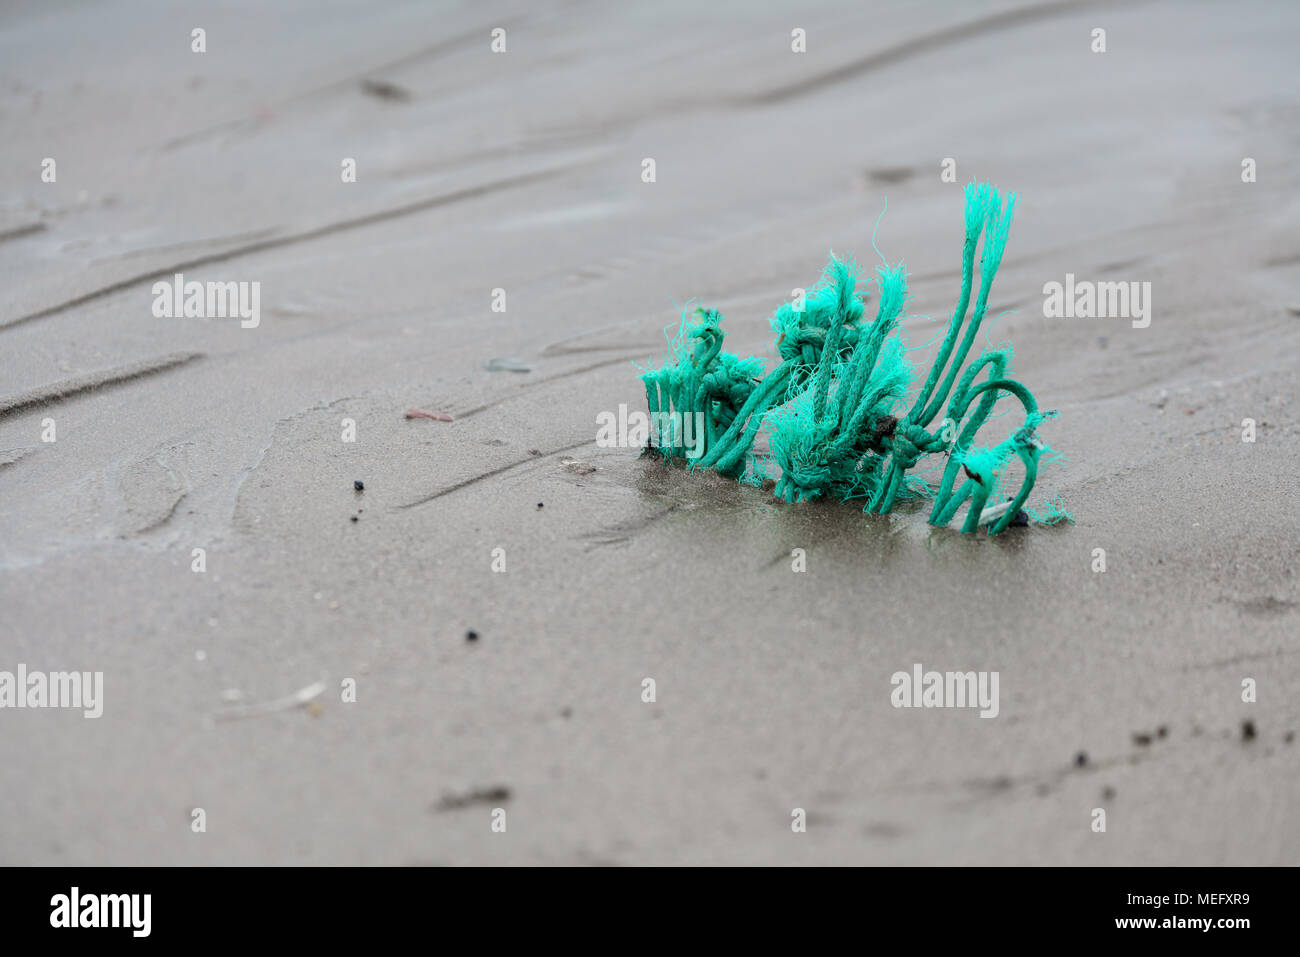 Plastic pollution on beaches in the sand at Tregantle Beach, Cornwall, UK. Nurdles and other detritus on the high tide line. - Stock Image